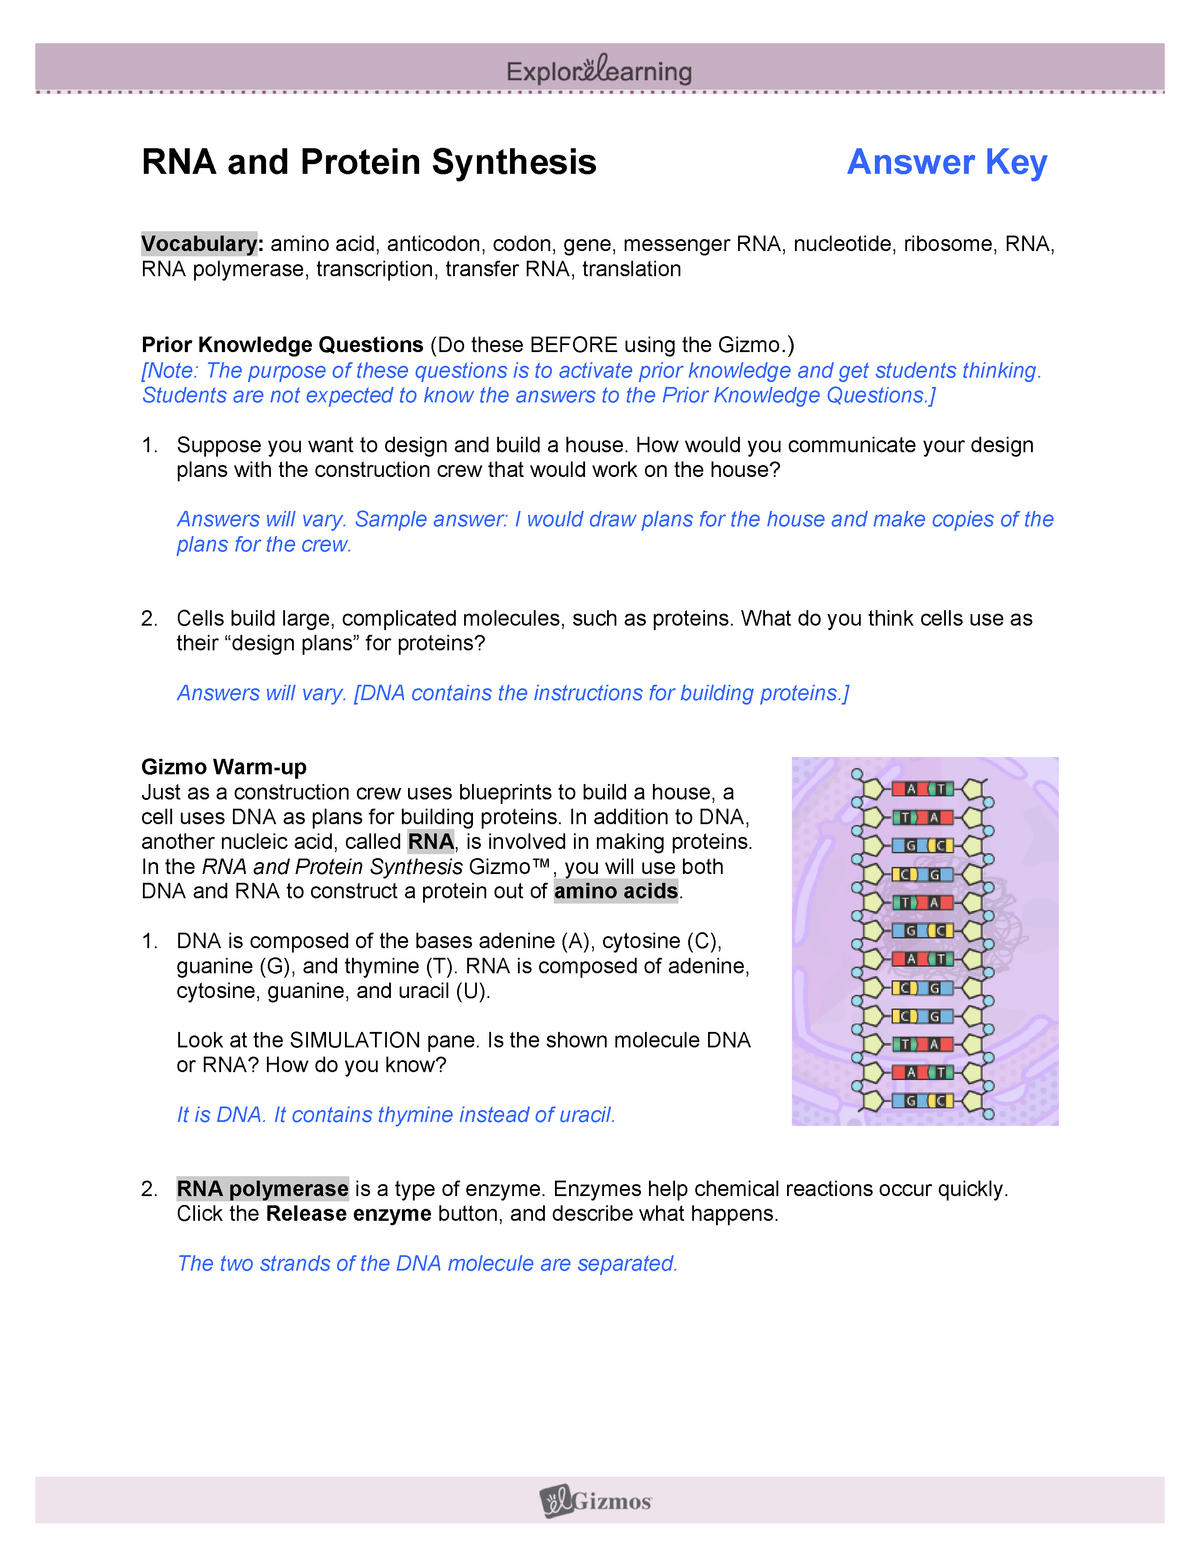 25-RNAProtein Synthesis SE-KEY - RNA and Protein Synthesis Regarding Dna And Rna Worksheet Answers